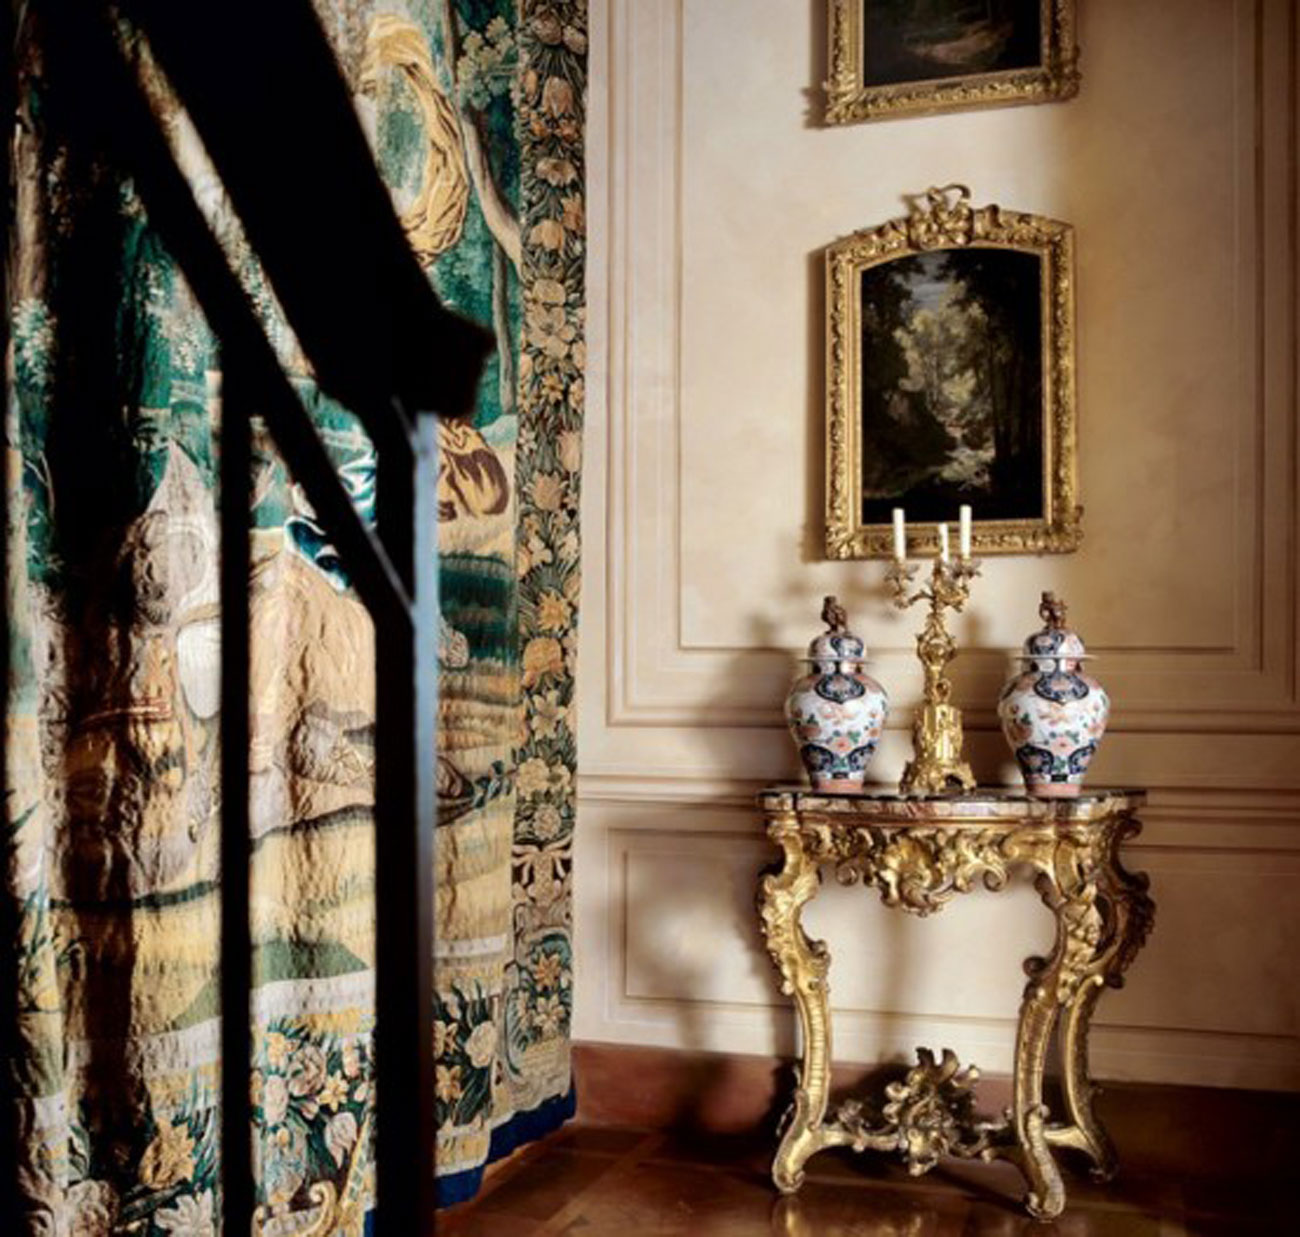 Monarch Apartment, Luxurious Interior Design Reminder of Emperor Napoleon III in Turin - Elegant Decoration